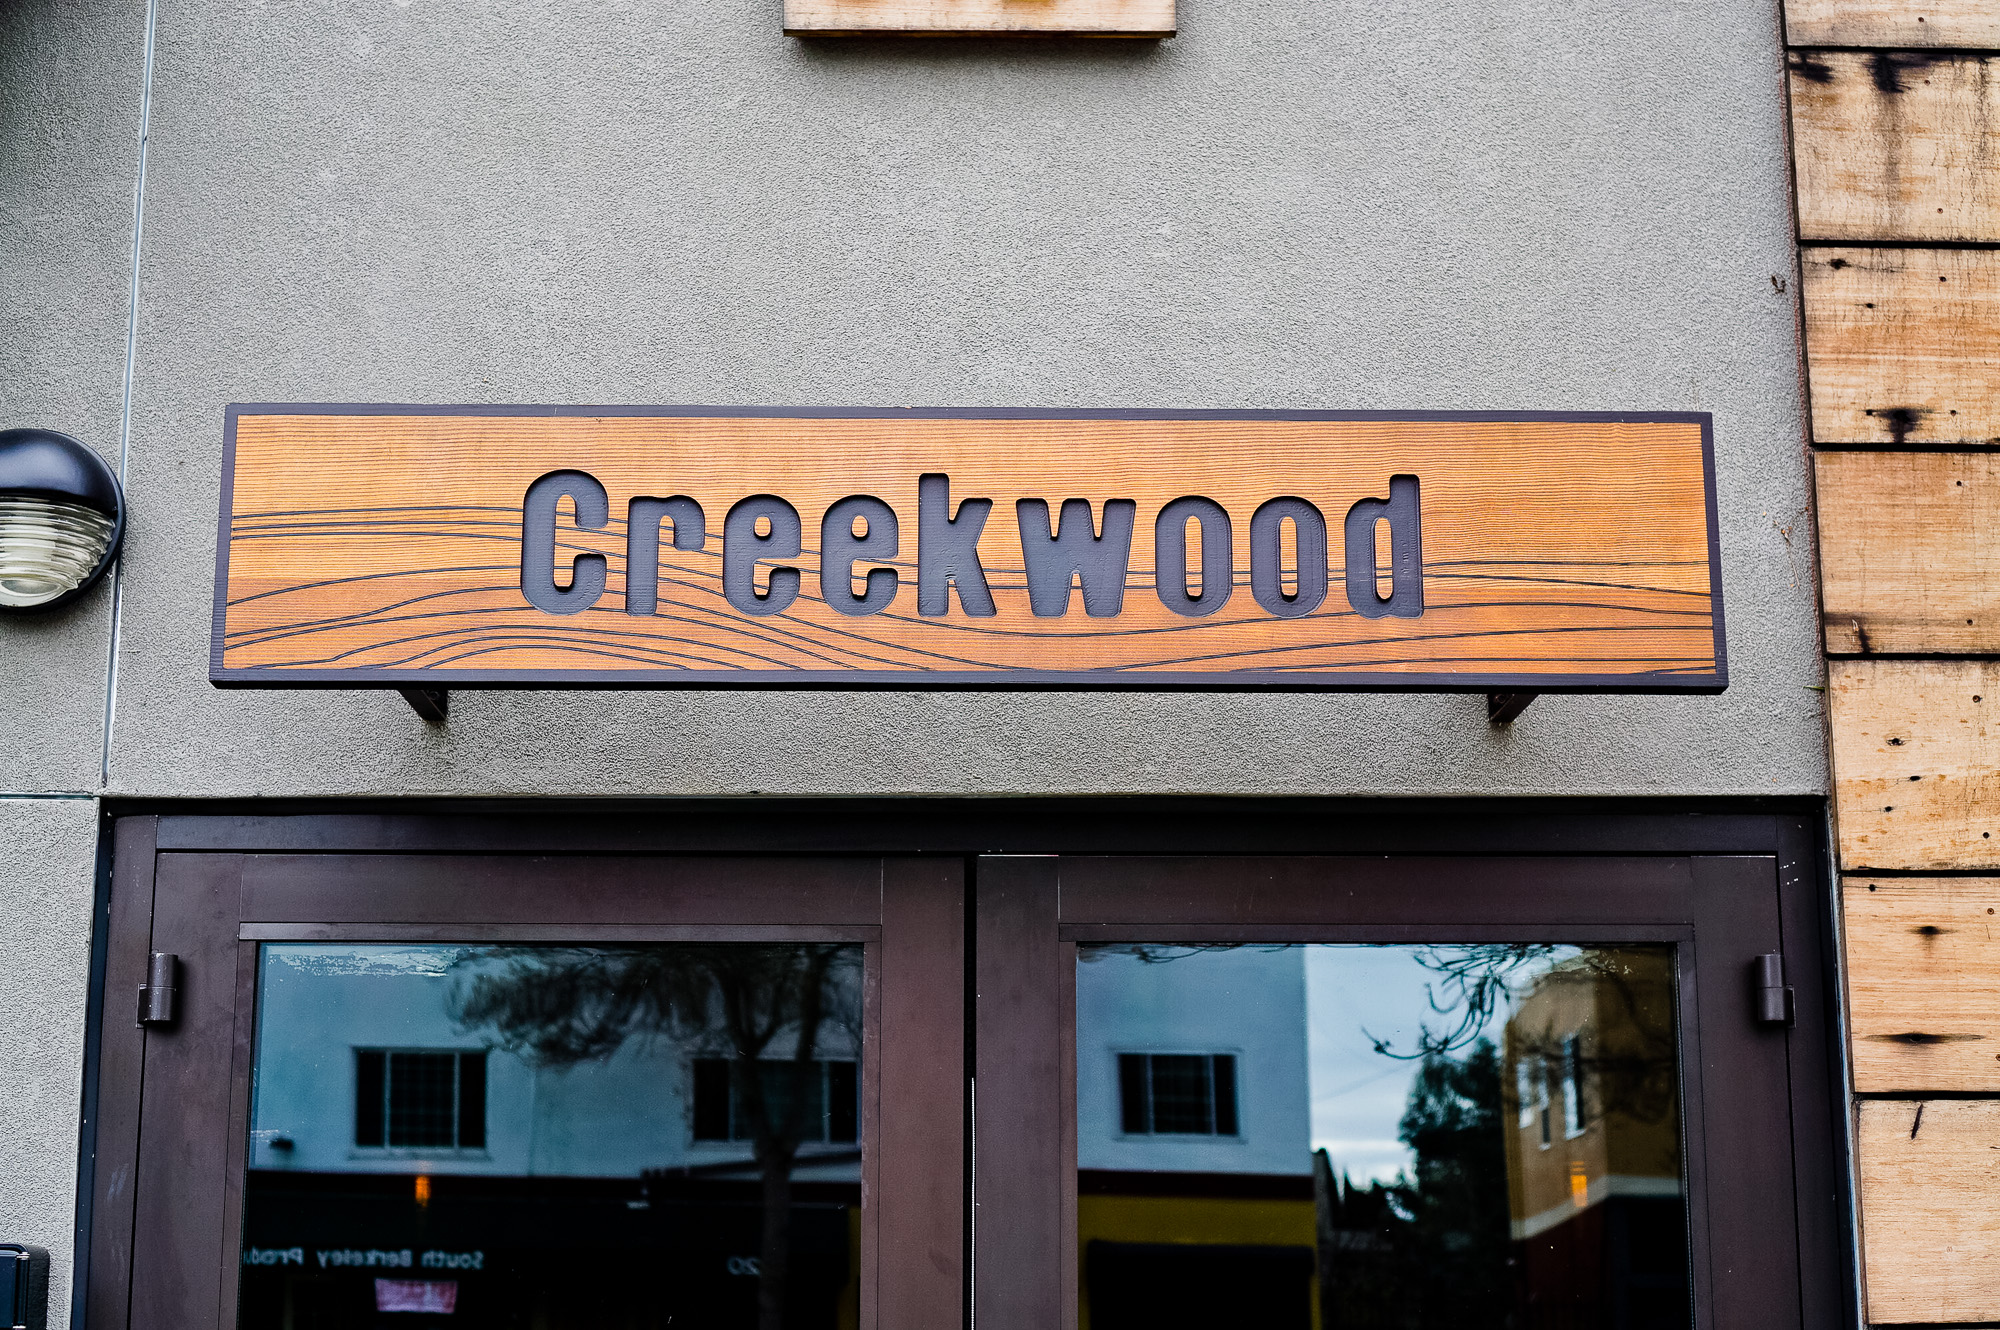 Engraved cedar wood sign on concrete walkl for Creekwood, a Californian-Italian restaurant in Berkeley, CA